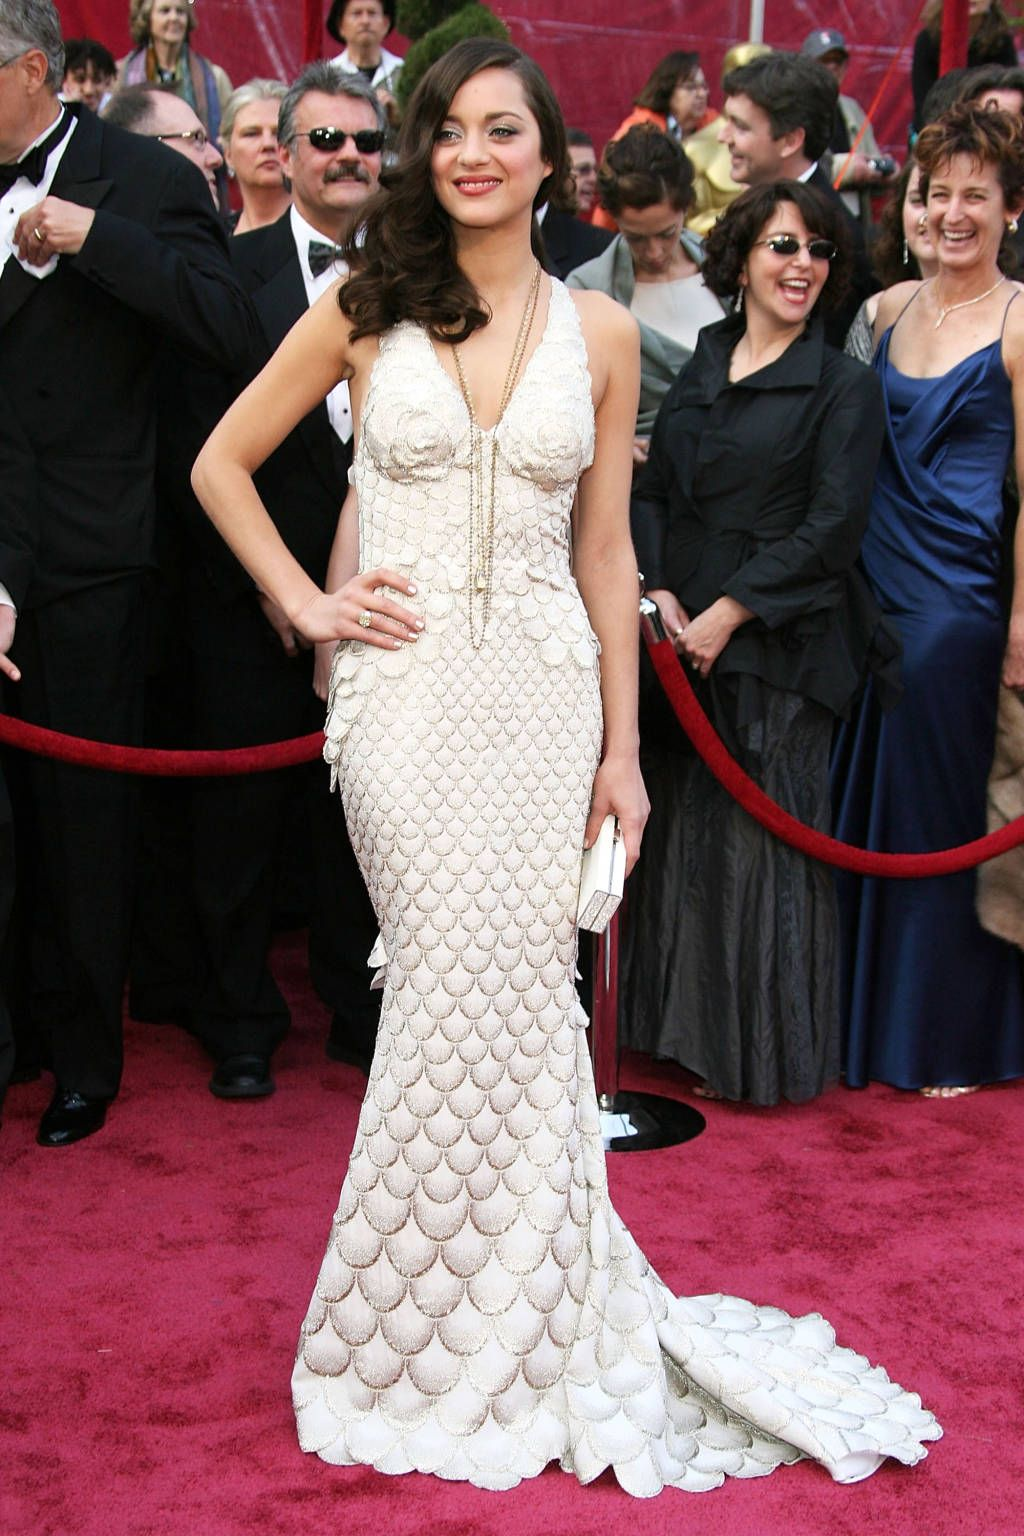 The Best Red Carpet Gowns Of All Time Best Oscar Dresses Red Carpet Dresses Best Red Carpet Gowns